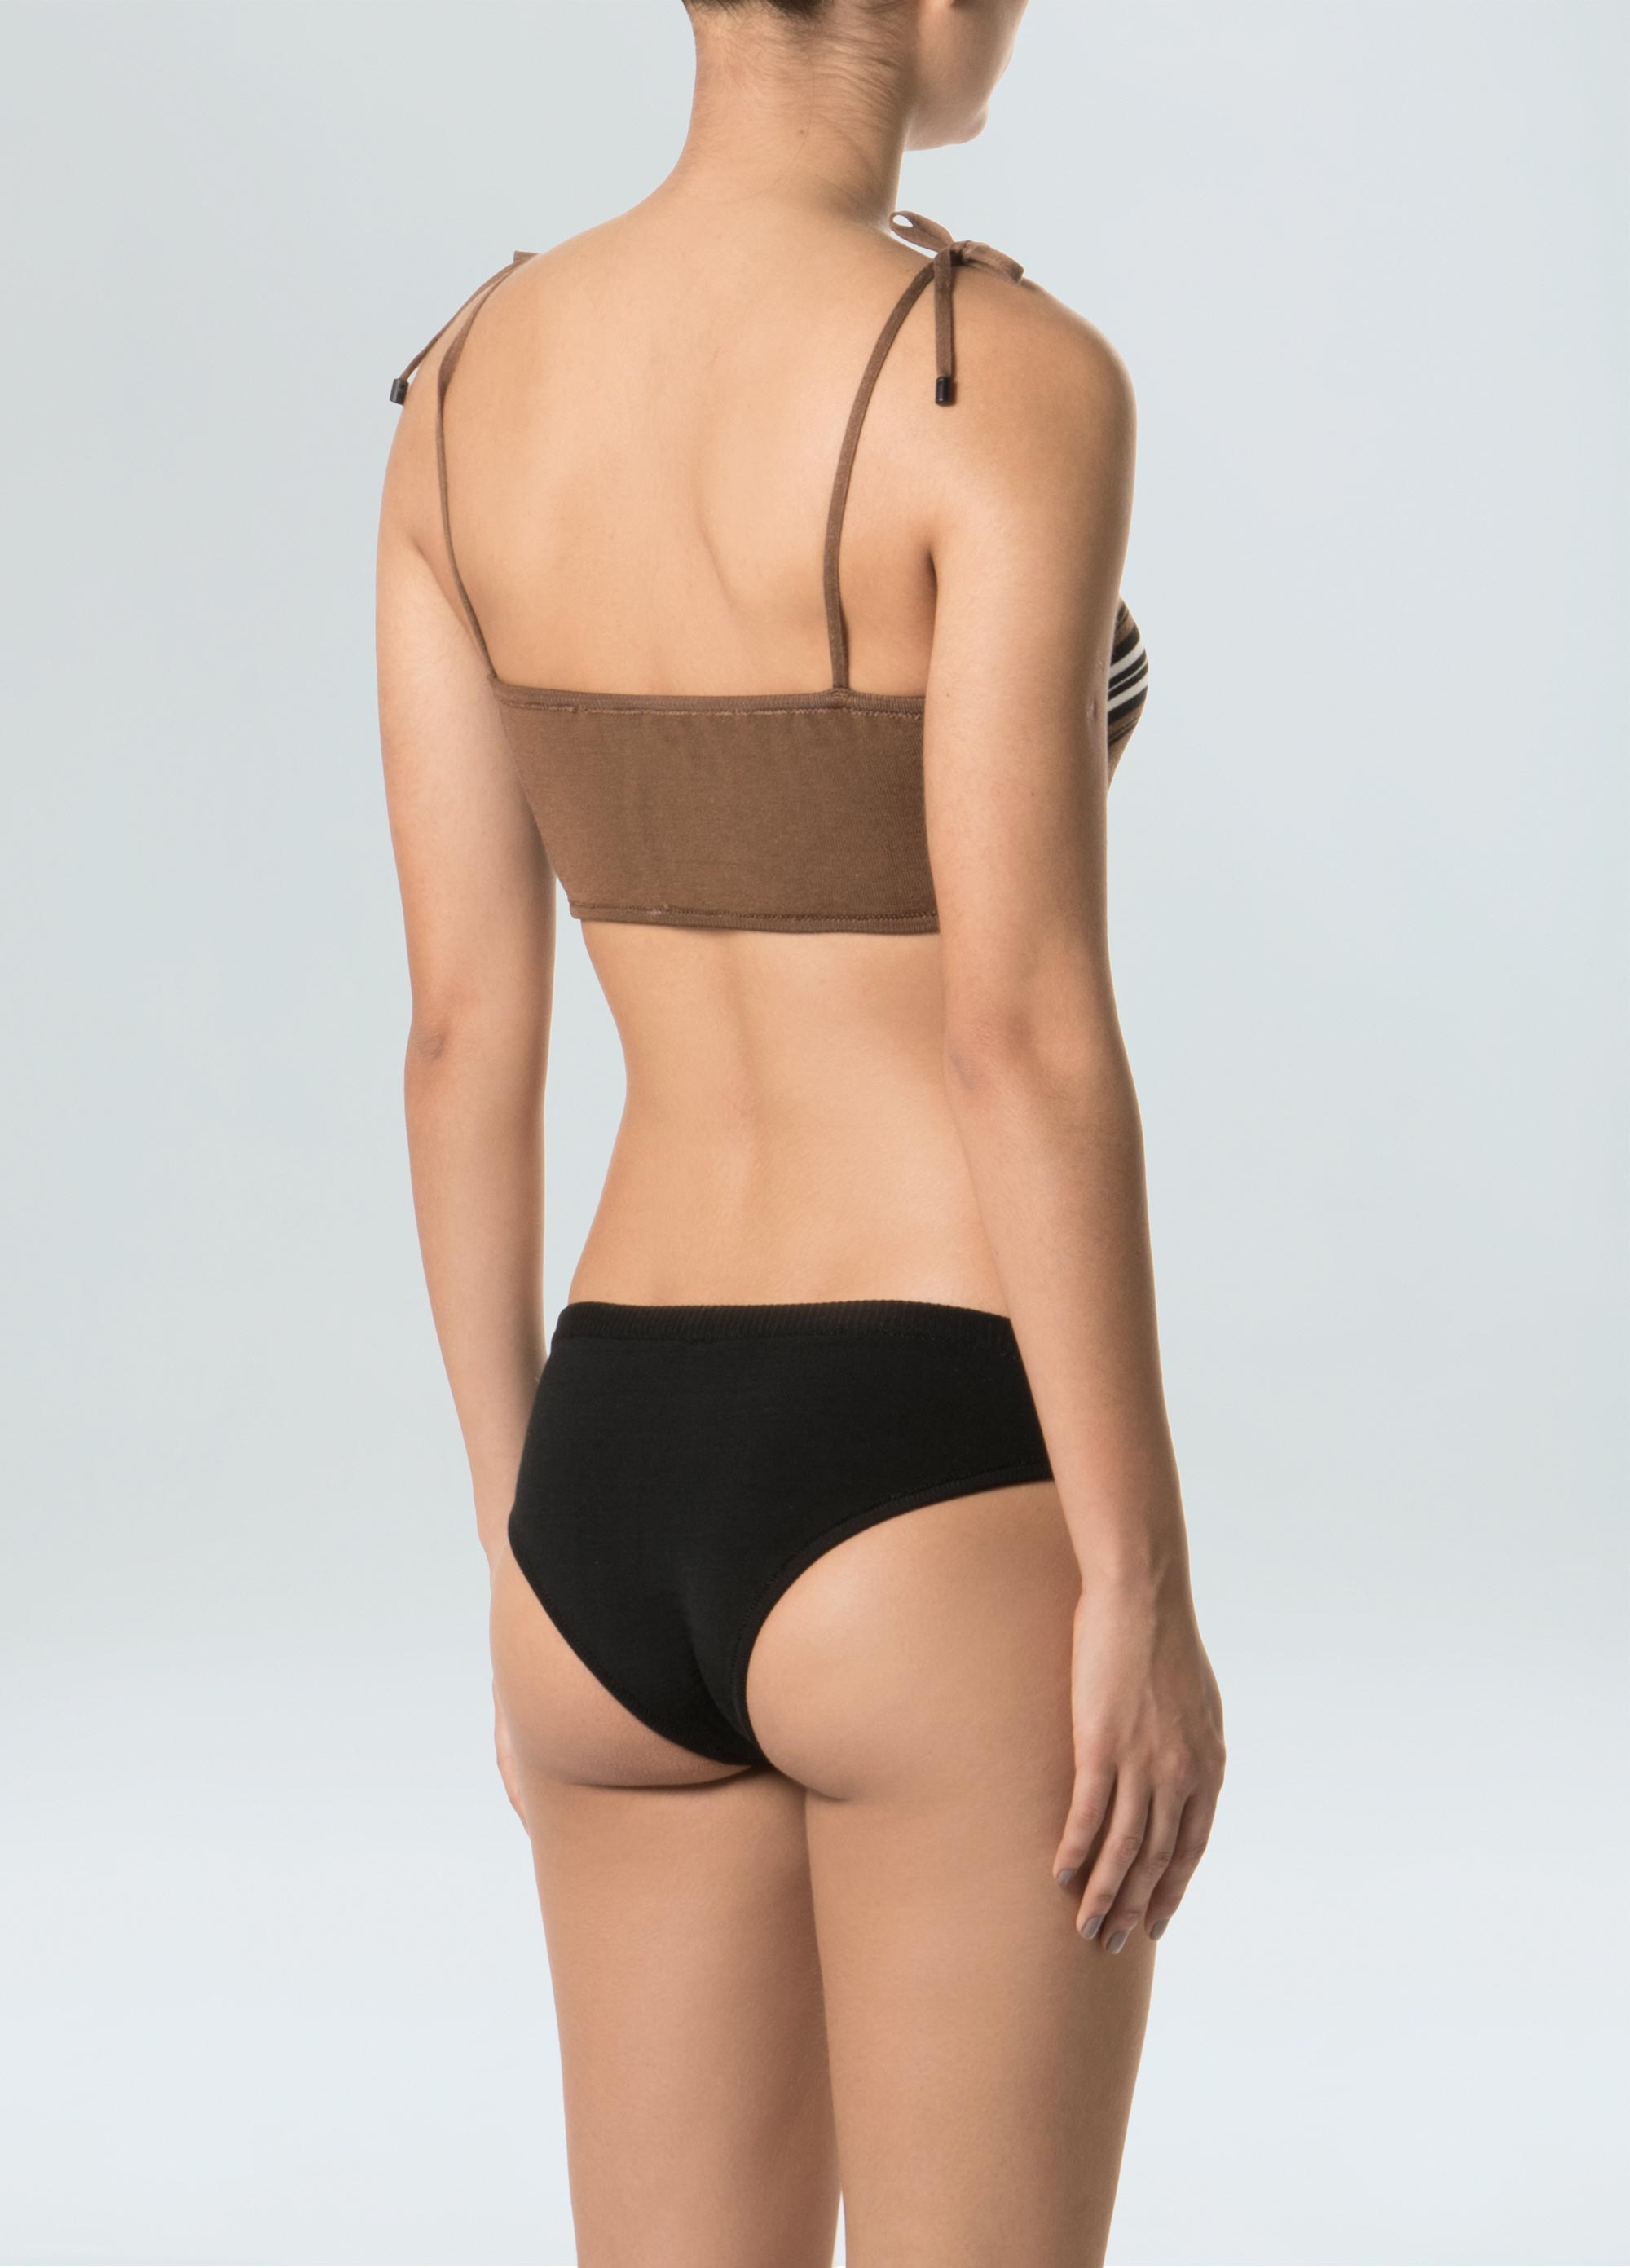 Women's Striped Jute Knit Bikini